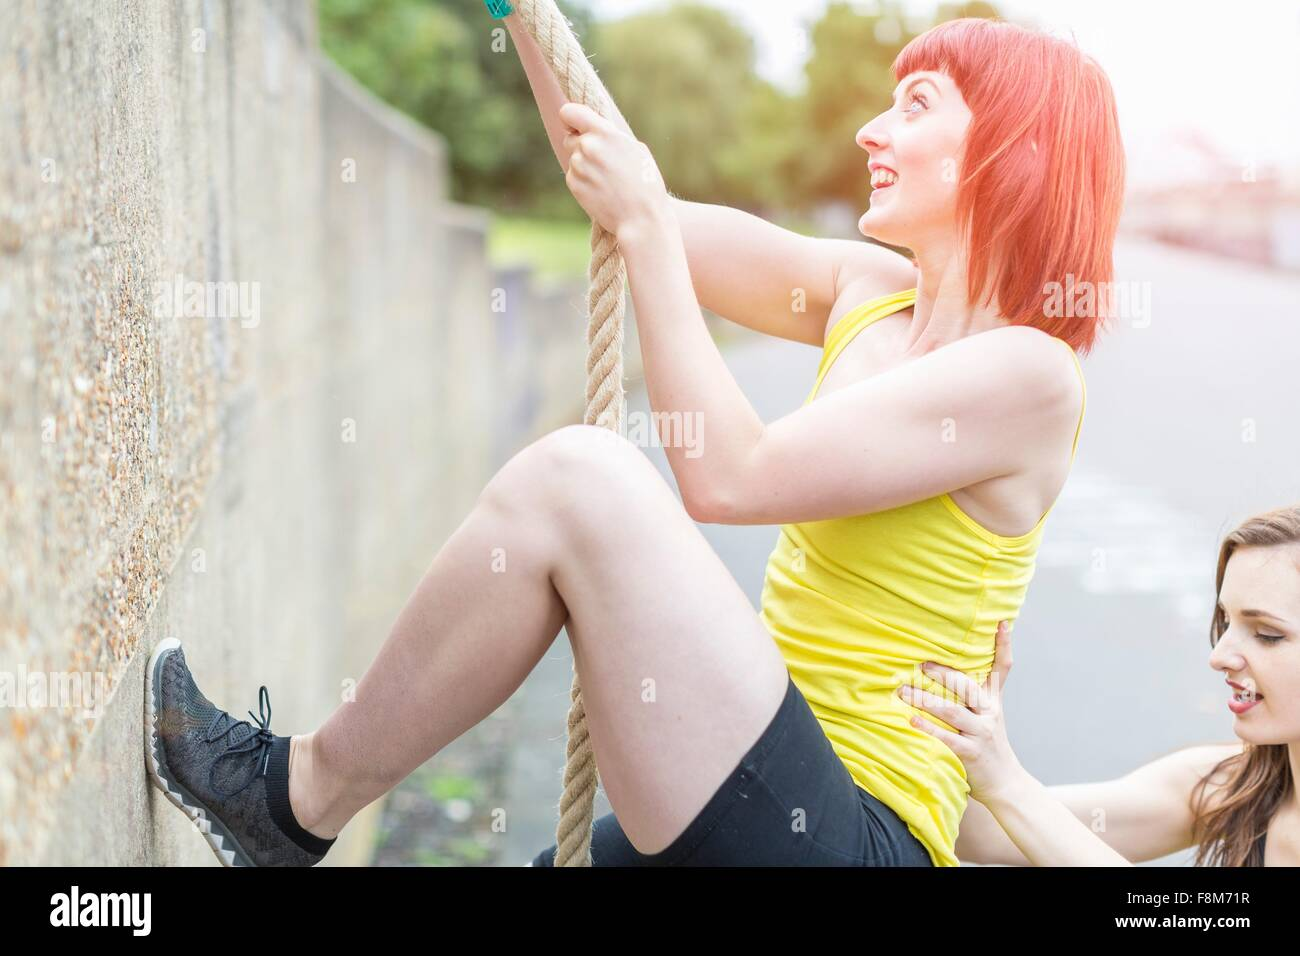 Young women climbing over wall with rope - Stock Image